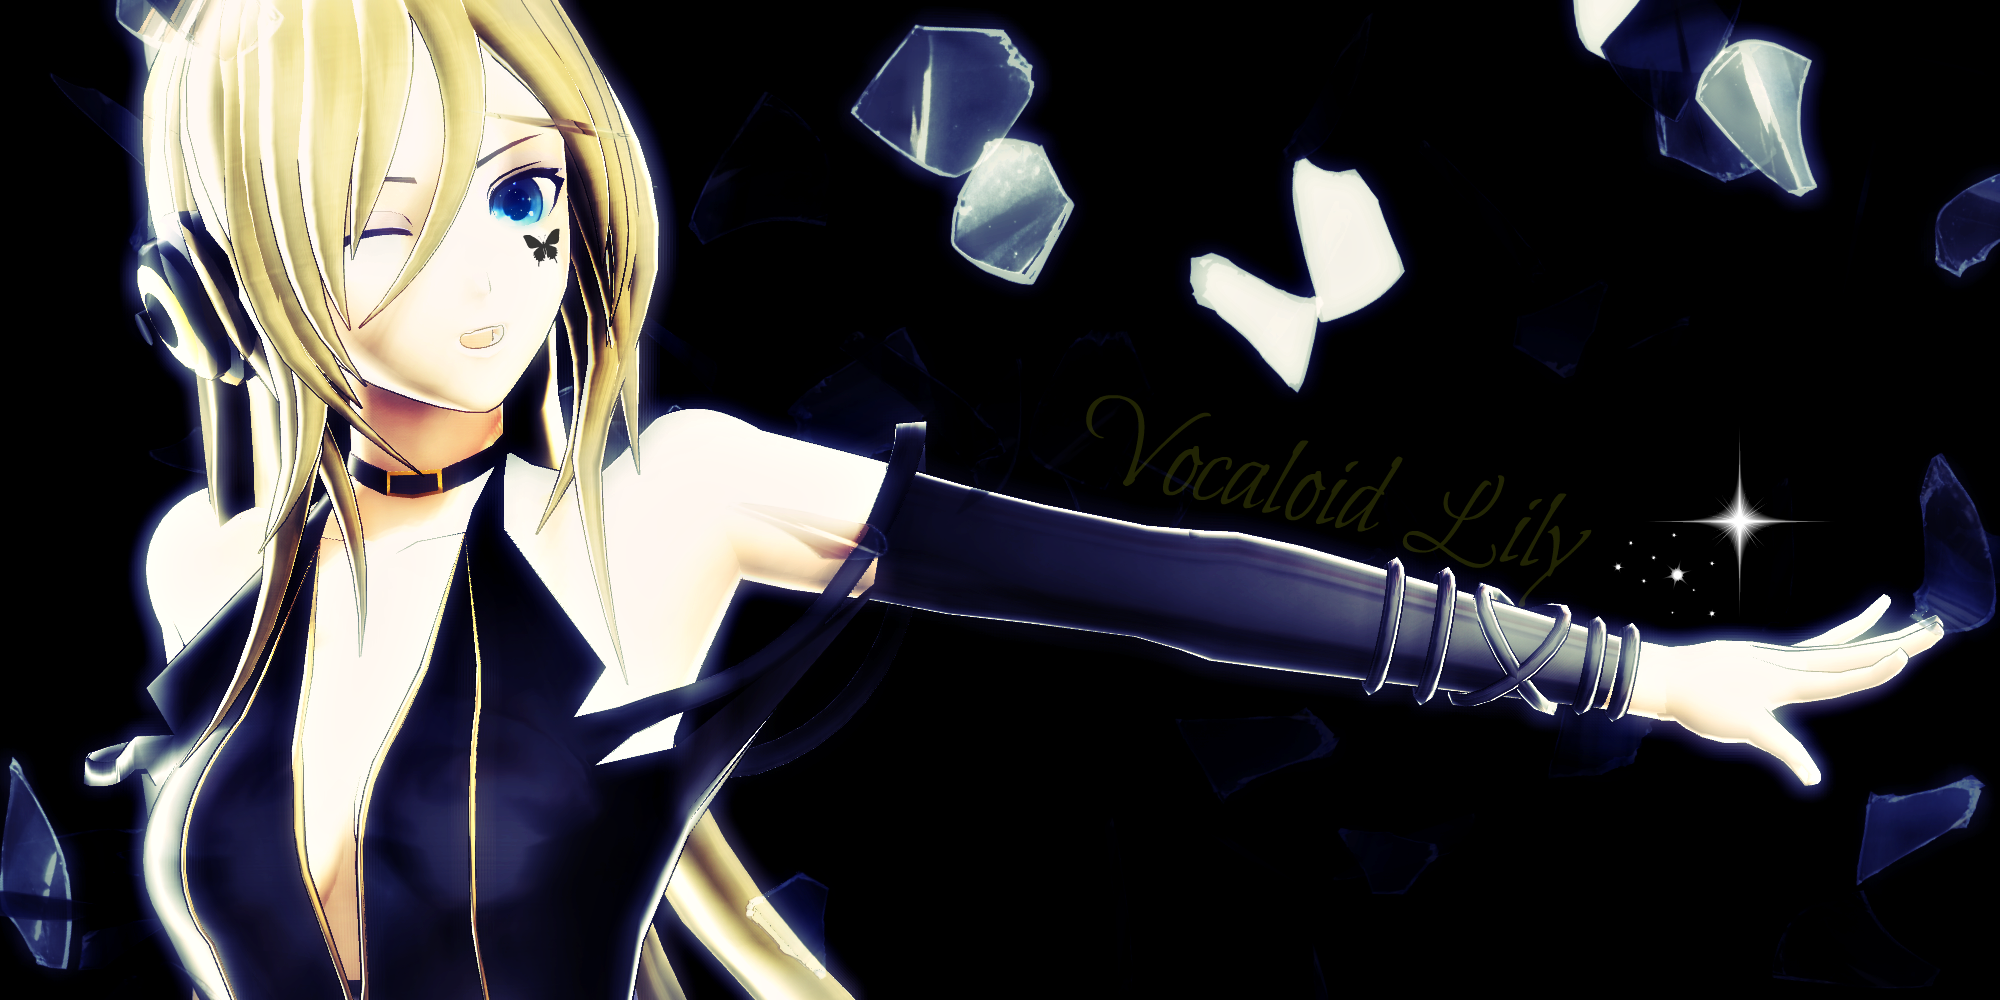 lily vocaloid wallpaper - photo #40